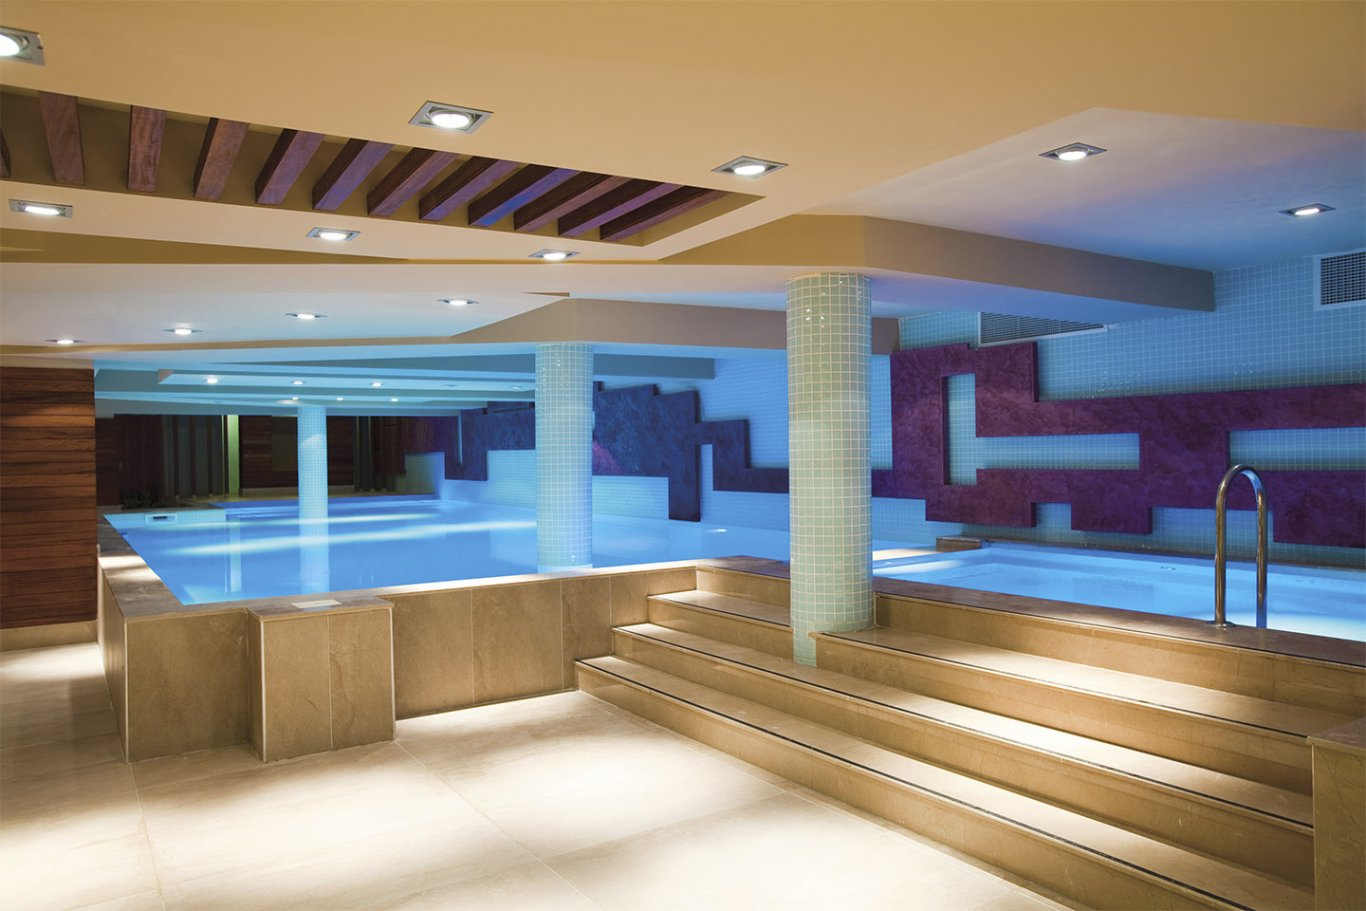 Basement conversion specialists in london cool basements Basement swimming pool construction